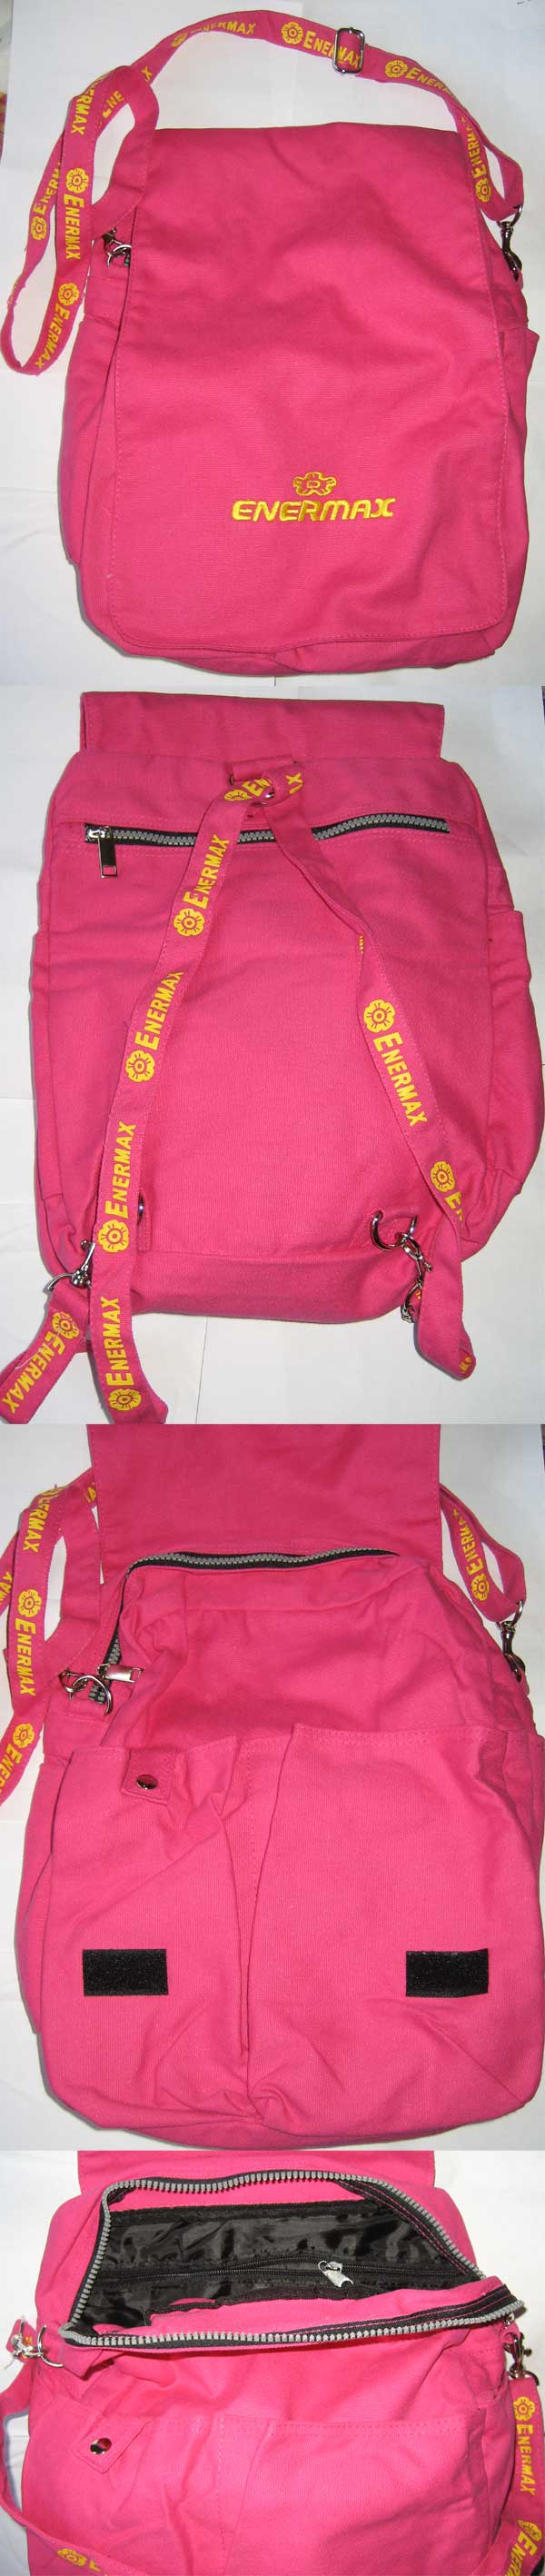 Enermax Pink Cross Body/Backpack (one left) <!--CL-->